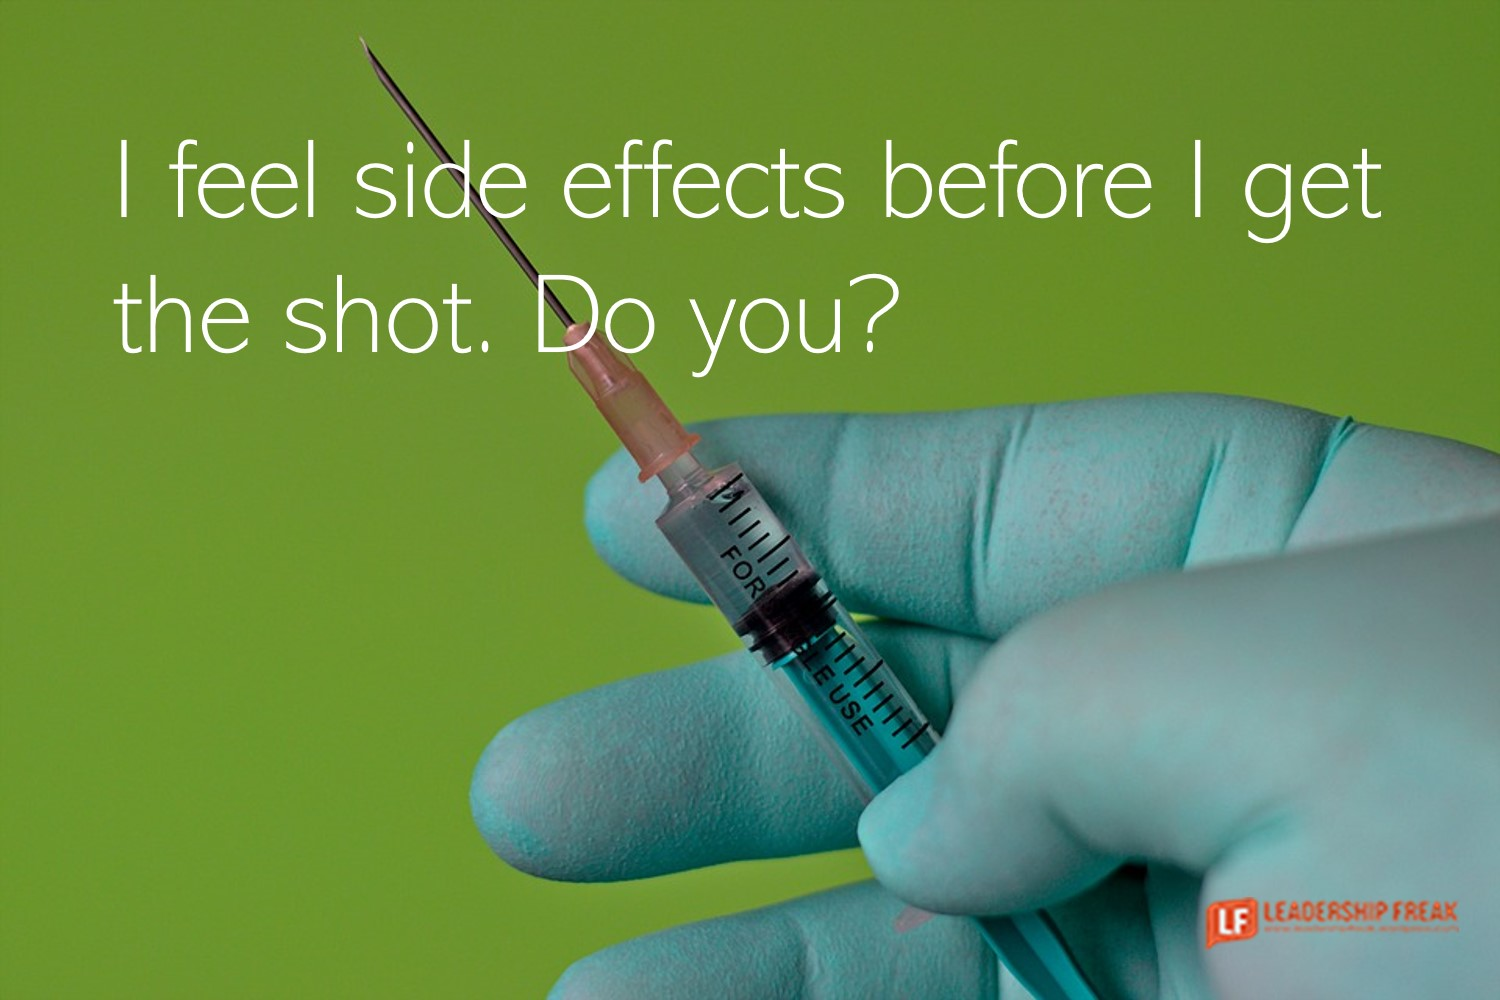 Needle. Vaccination.  I feel side effects before I get the shot. Do you?